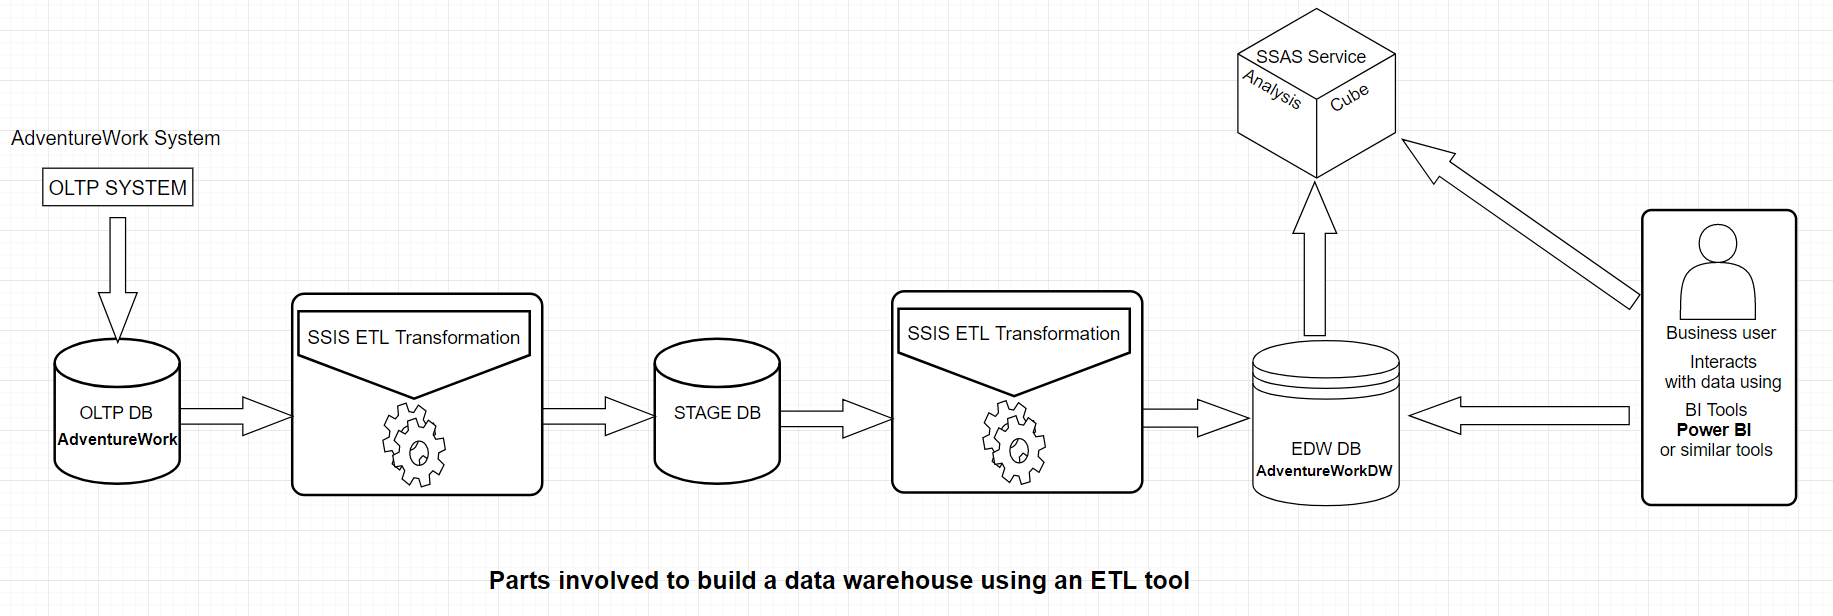 Process flow for building data warehouse with Microsoft SSIS